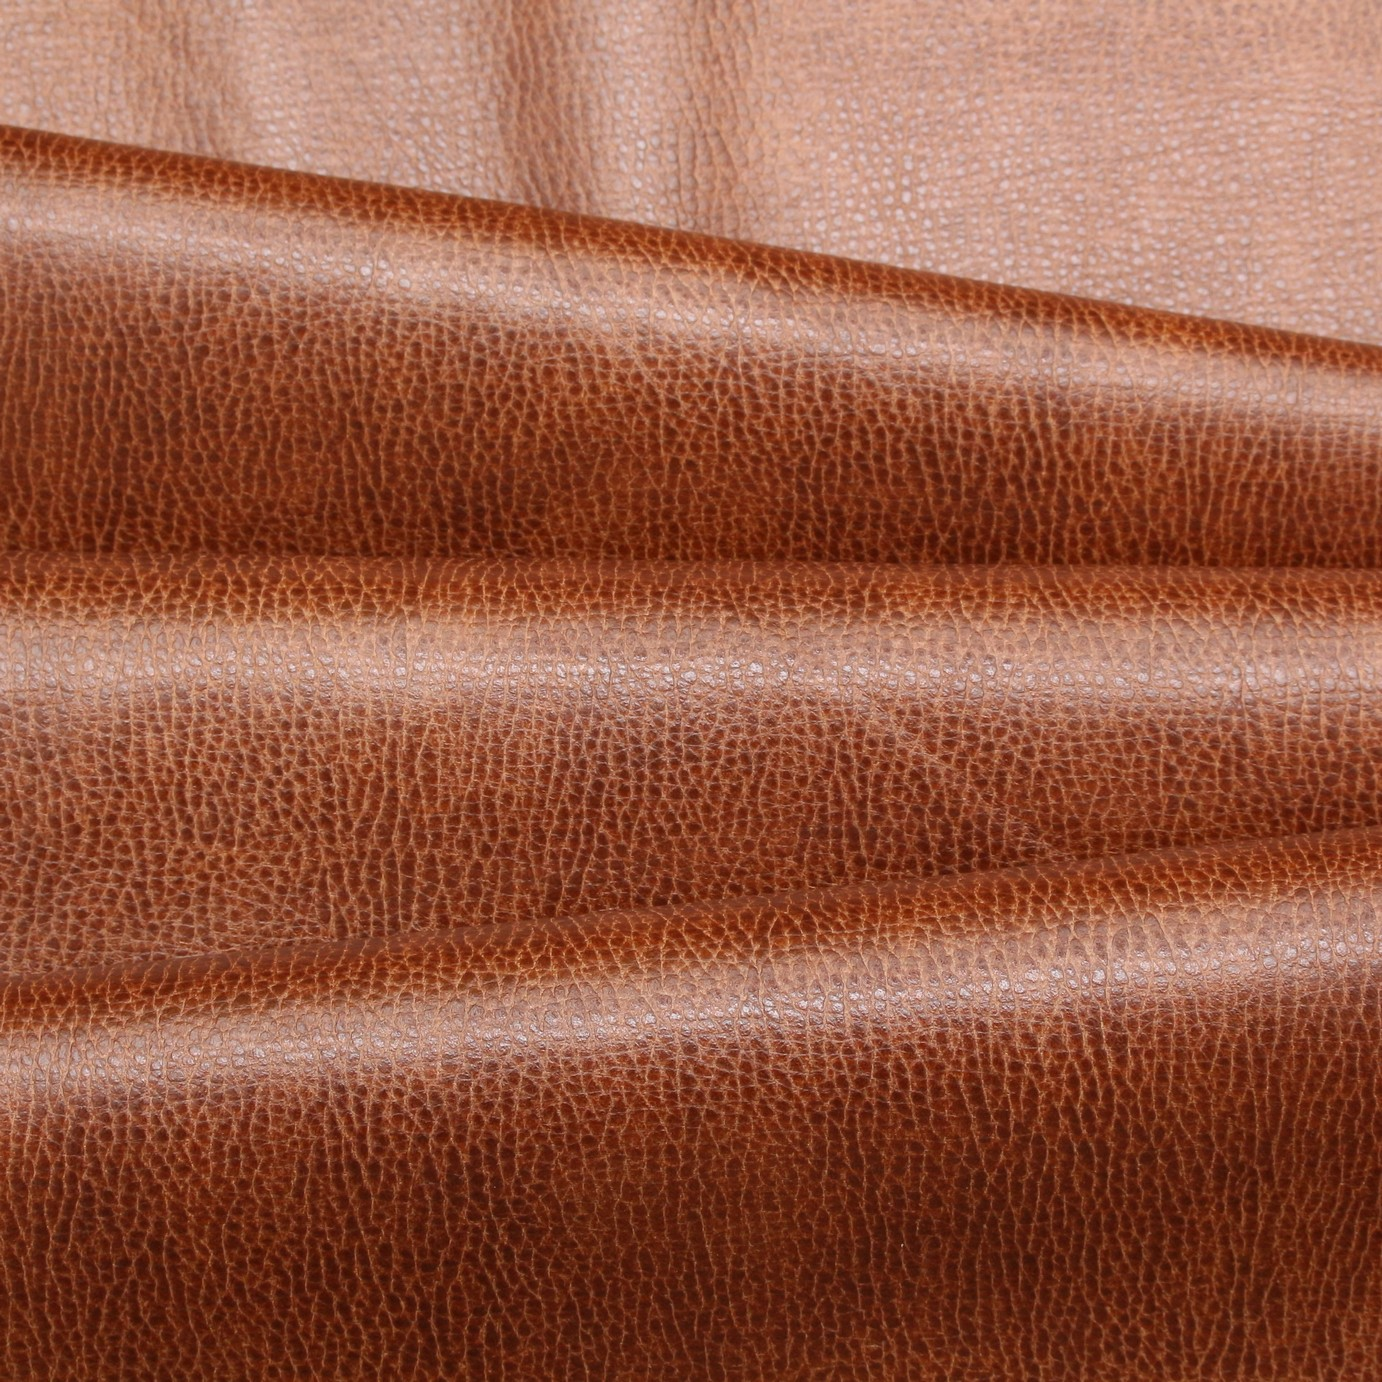 Eco Genuine Real Leather Recycled Textured Upholstery Fabric